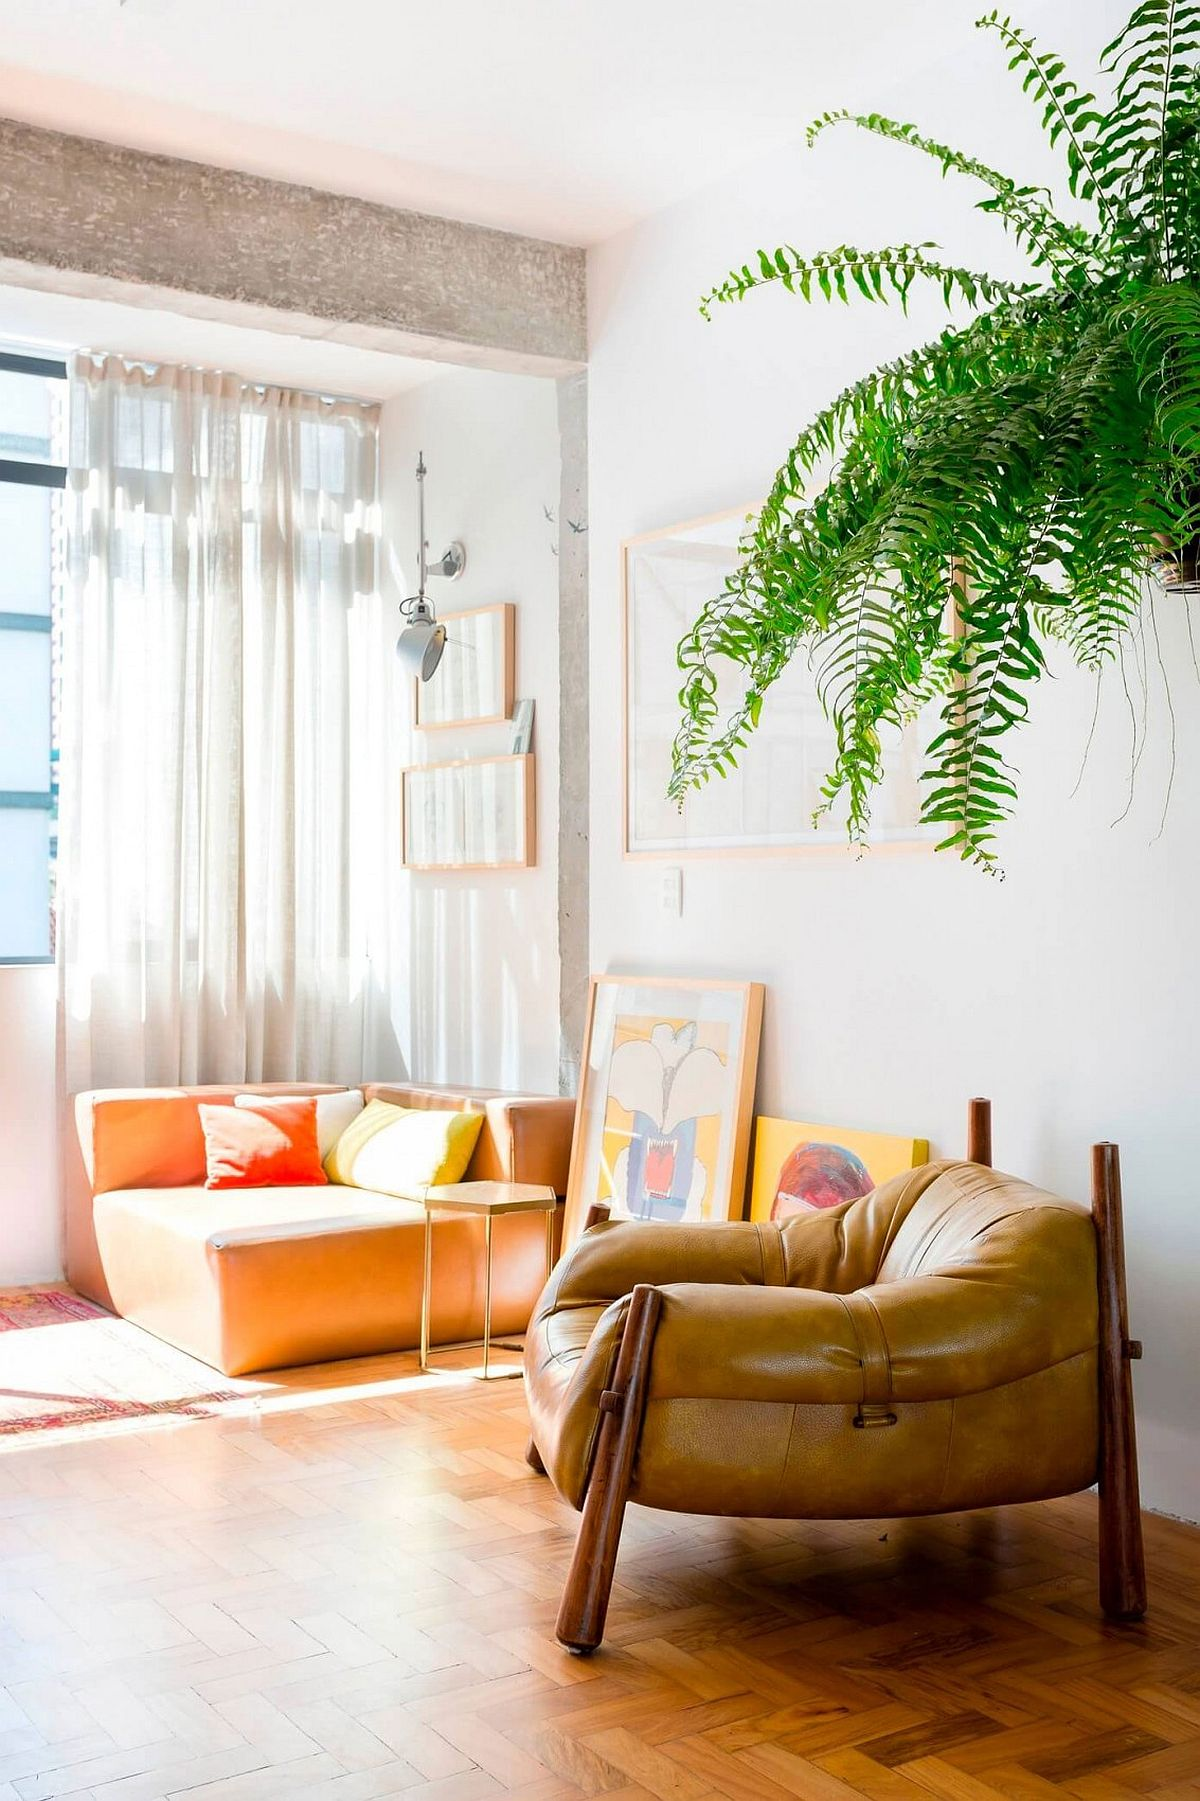 Decor inside the Sao Paulo apartment brings plenty of color to the neutral setting